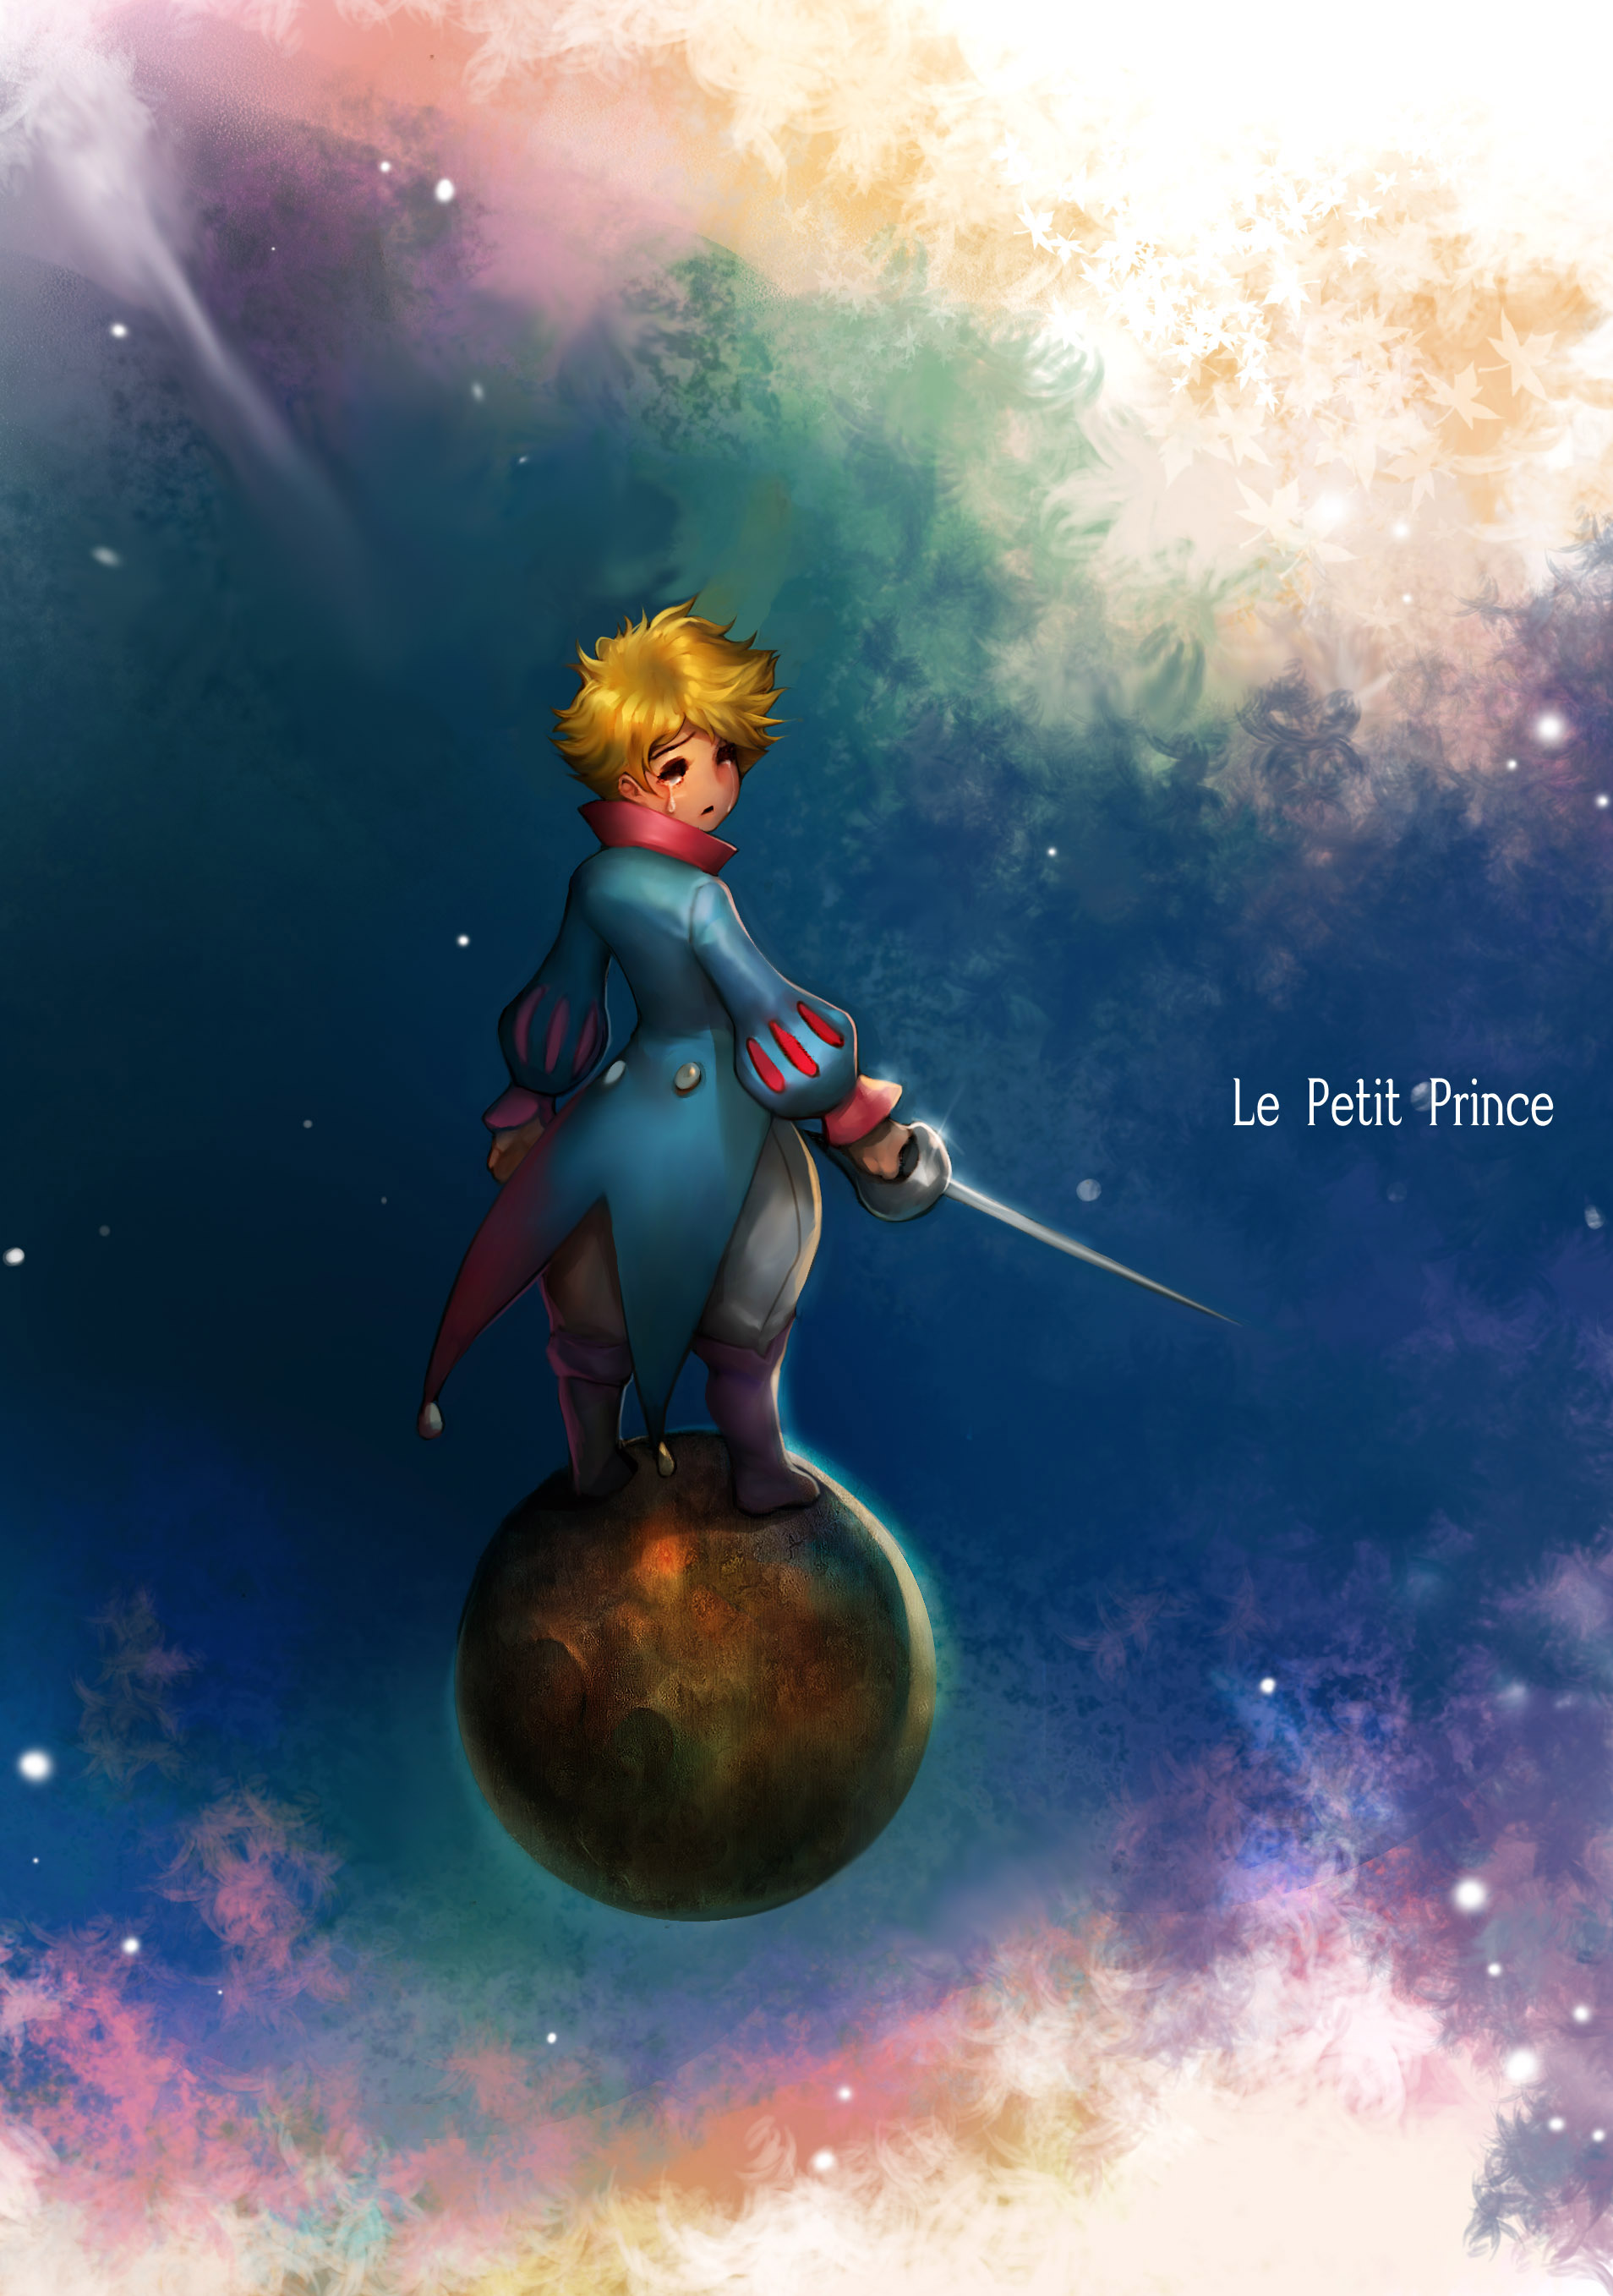 Piccolo Wallpaper Iphone The Little Prince The Little Prince Mobile Wallpaper